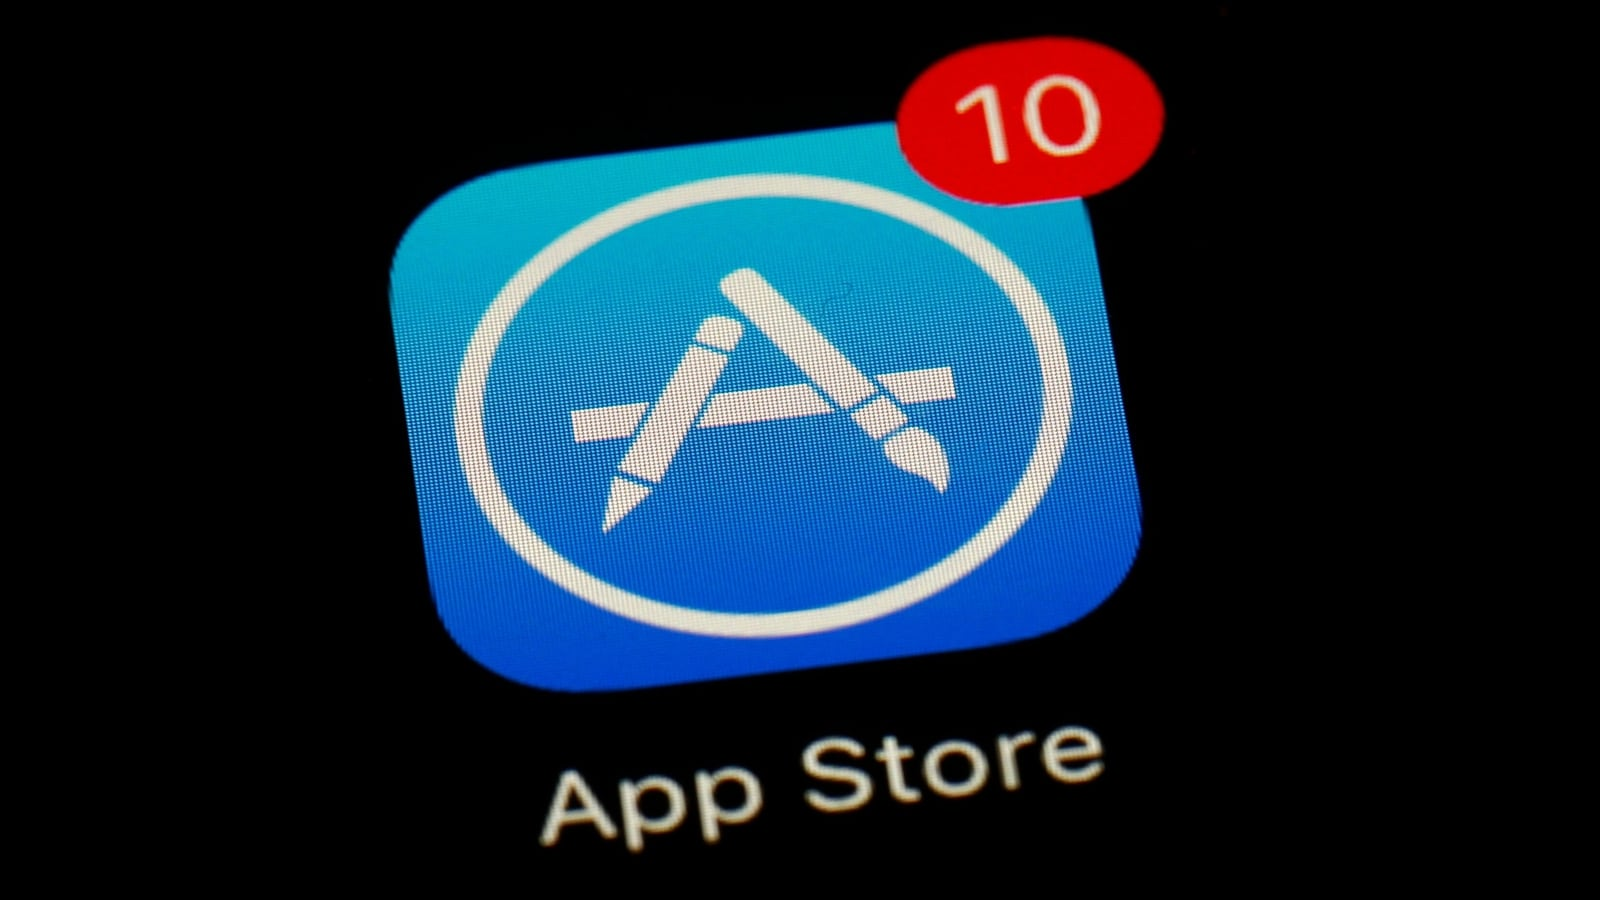 Apple raises fears of scammers targeting iPhone users through third-party app stores